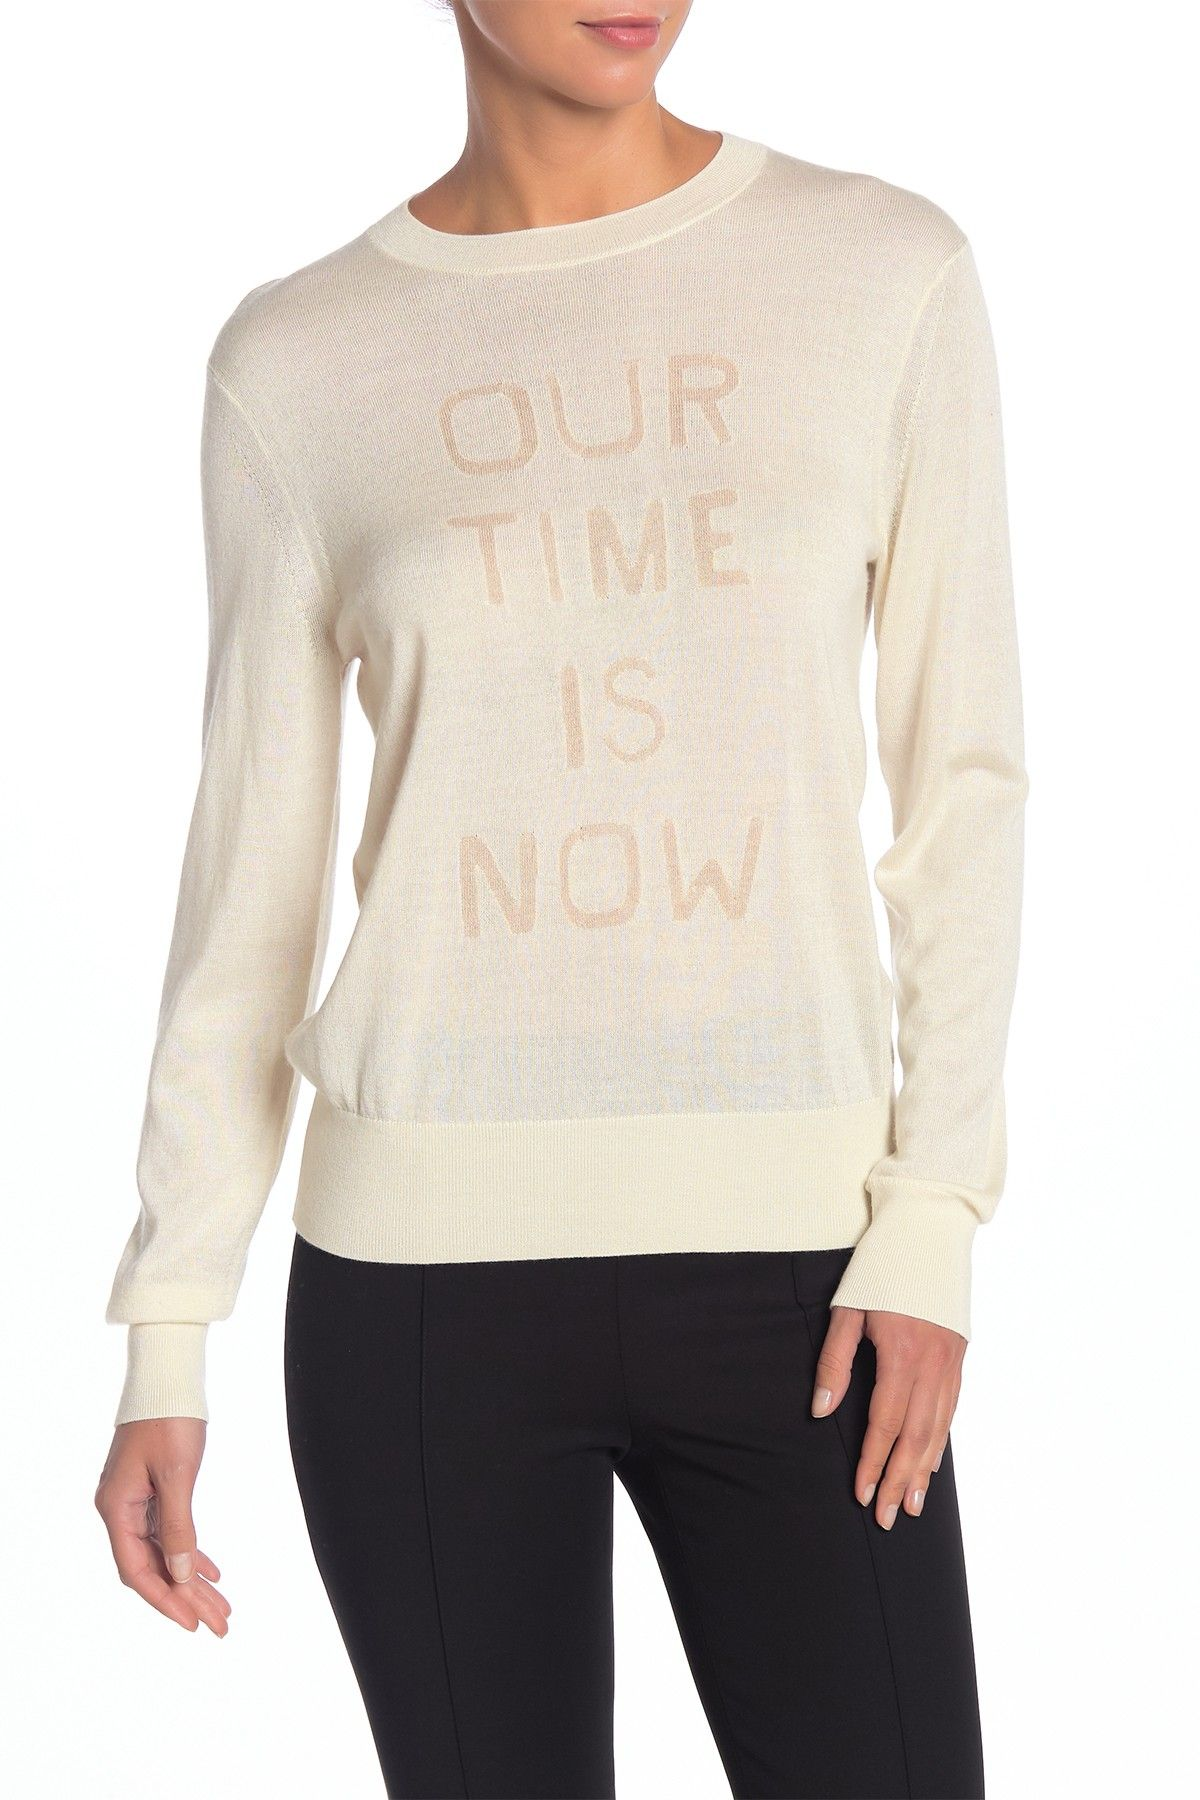 Theory | Our Time Is Now Silk & Cashmere Pullover #nordstromrack